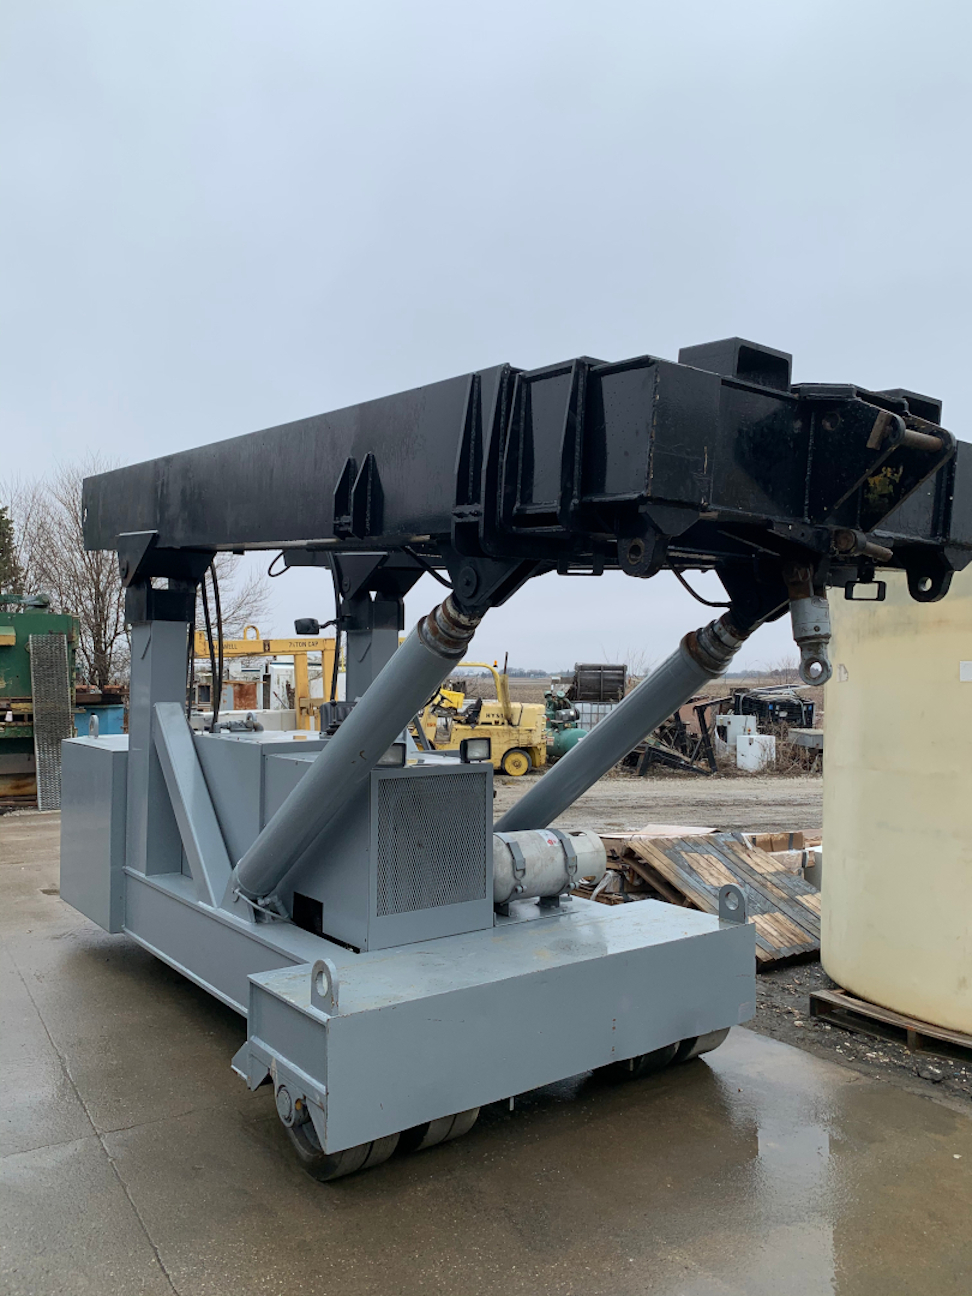 (1) PREOWNED TWIN LIFT 34 TON LIFT WITH JIB CRANE EXT AND <br>FORK TRUCK JIBS, MODEL #: TWO 30, S/N: C10TWO30A 2